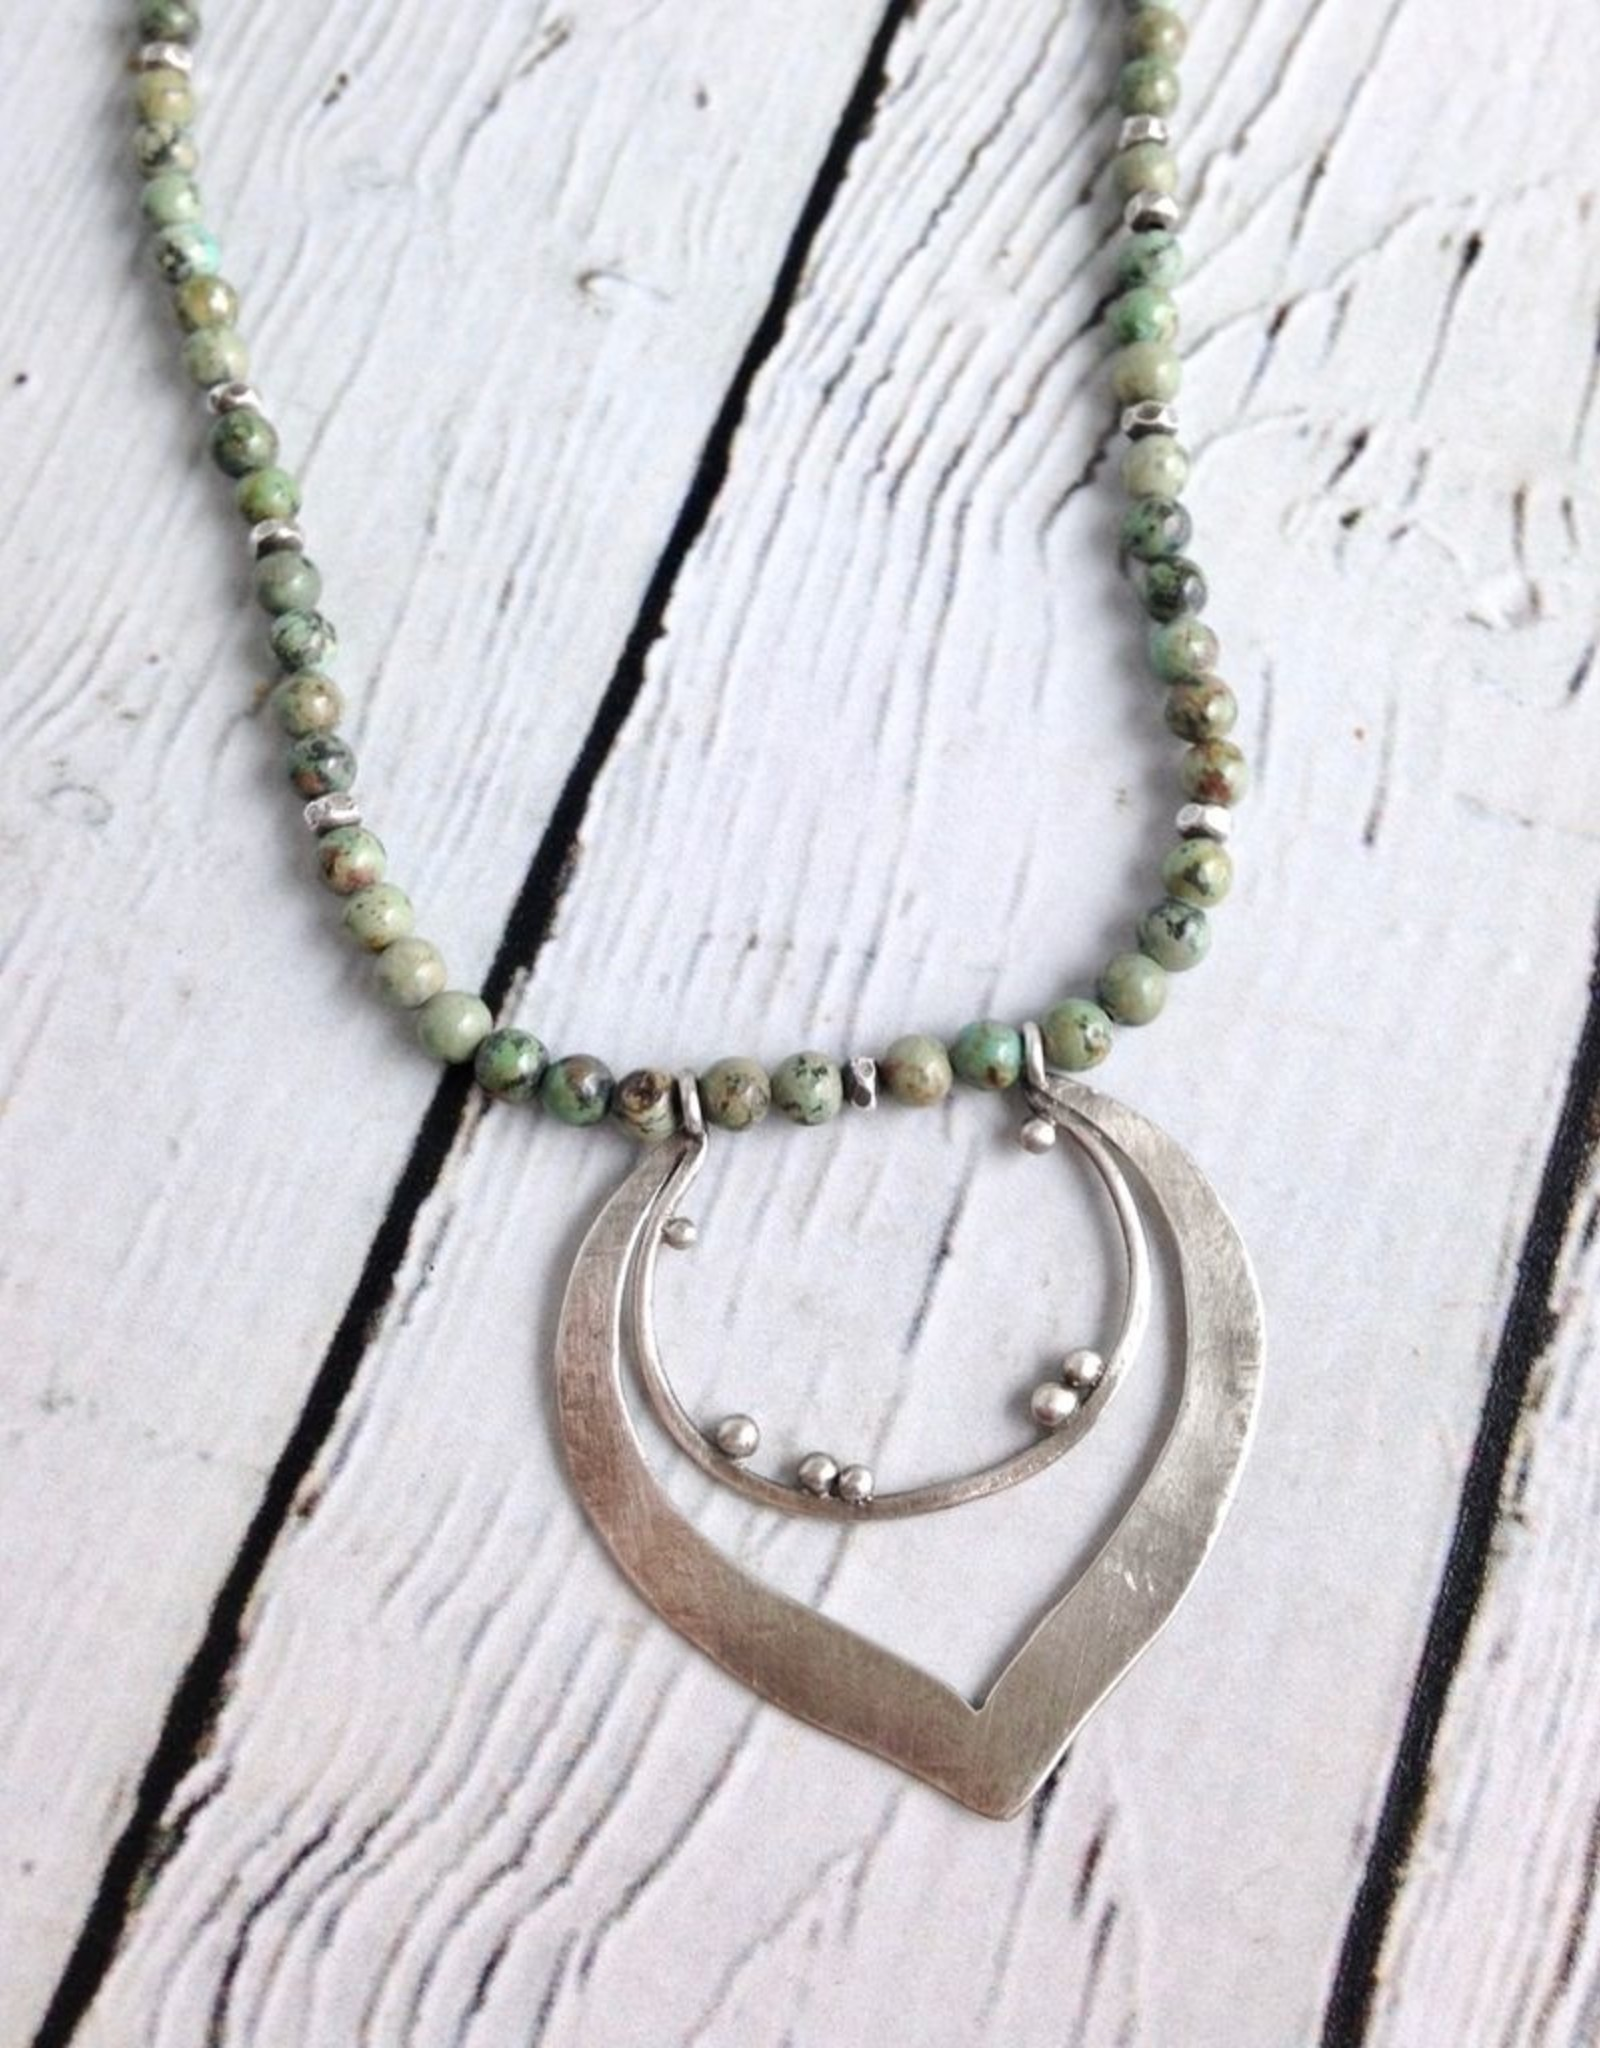 Handmade Sterling Silver Organic Pendant on Turquoise bead Necklace by Julia Britell Designs